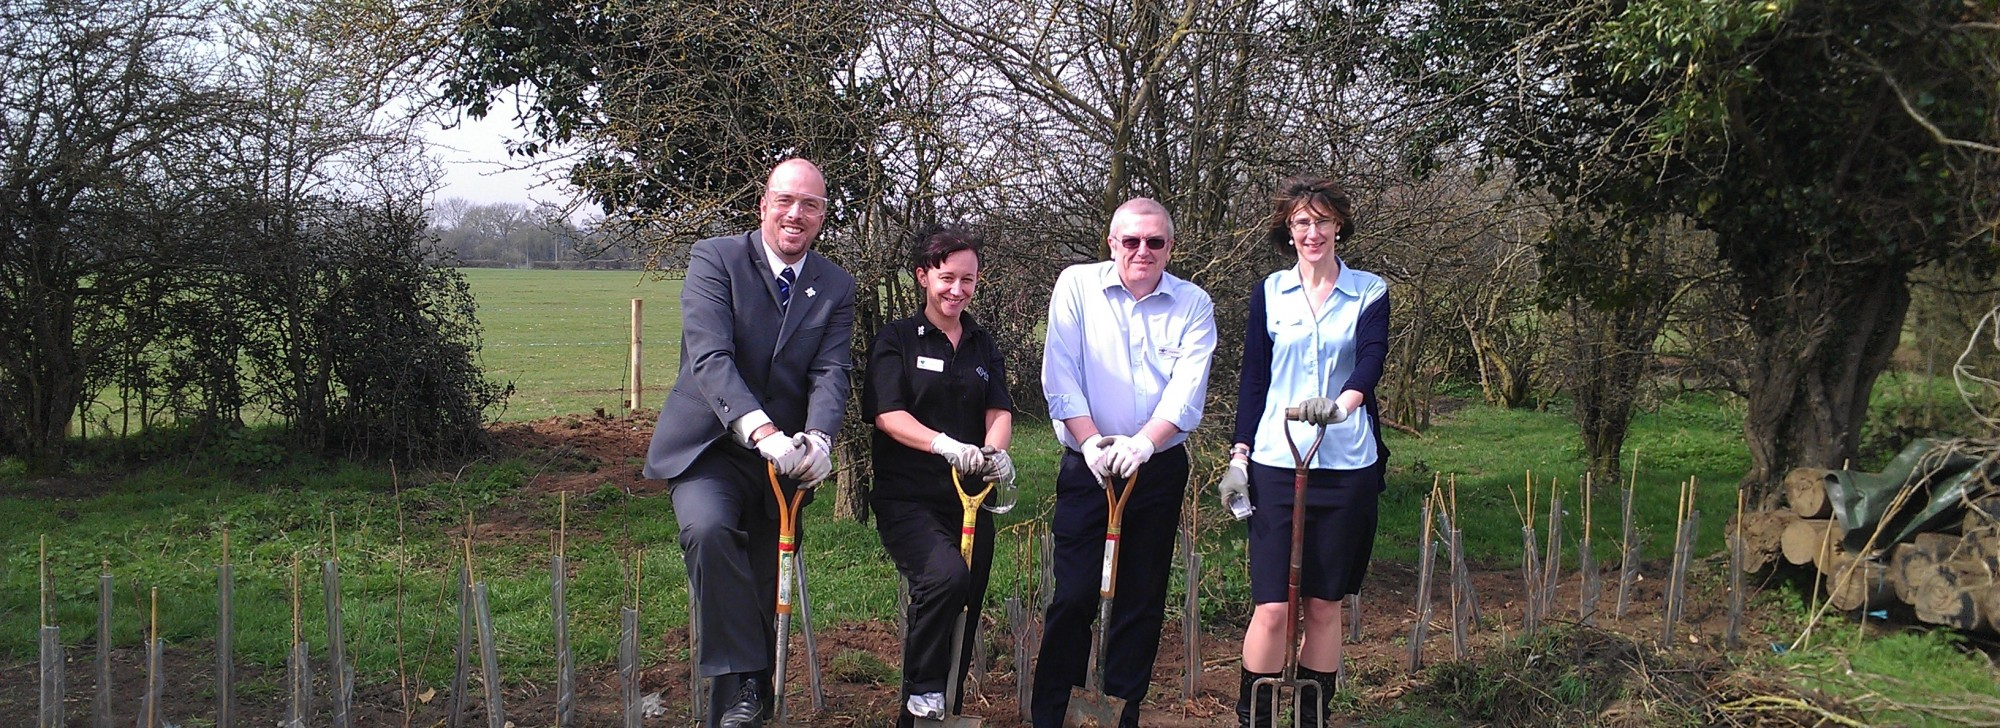 Tree planting in Reading, rivermead leisure complex